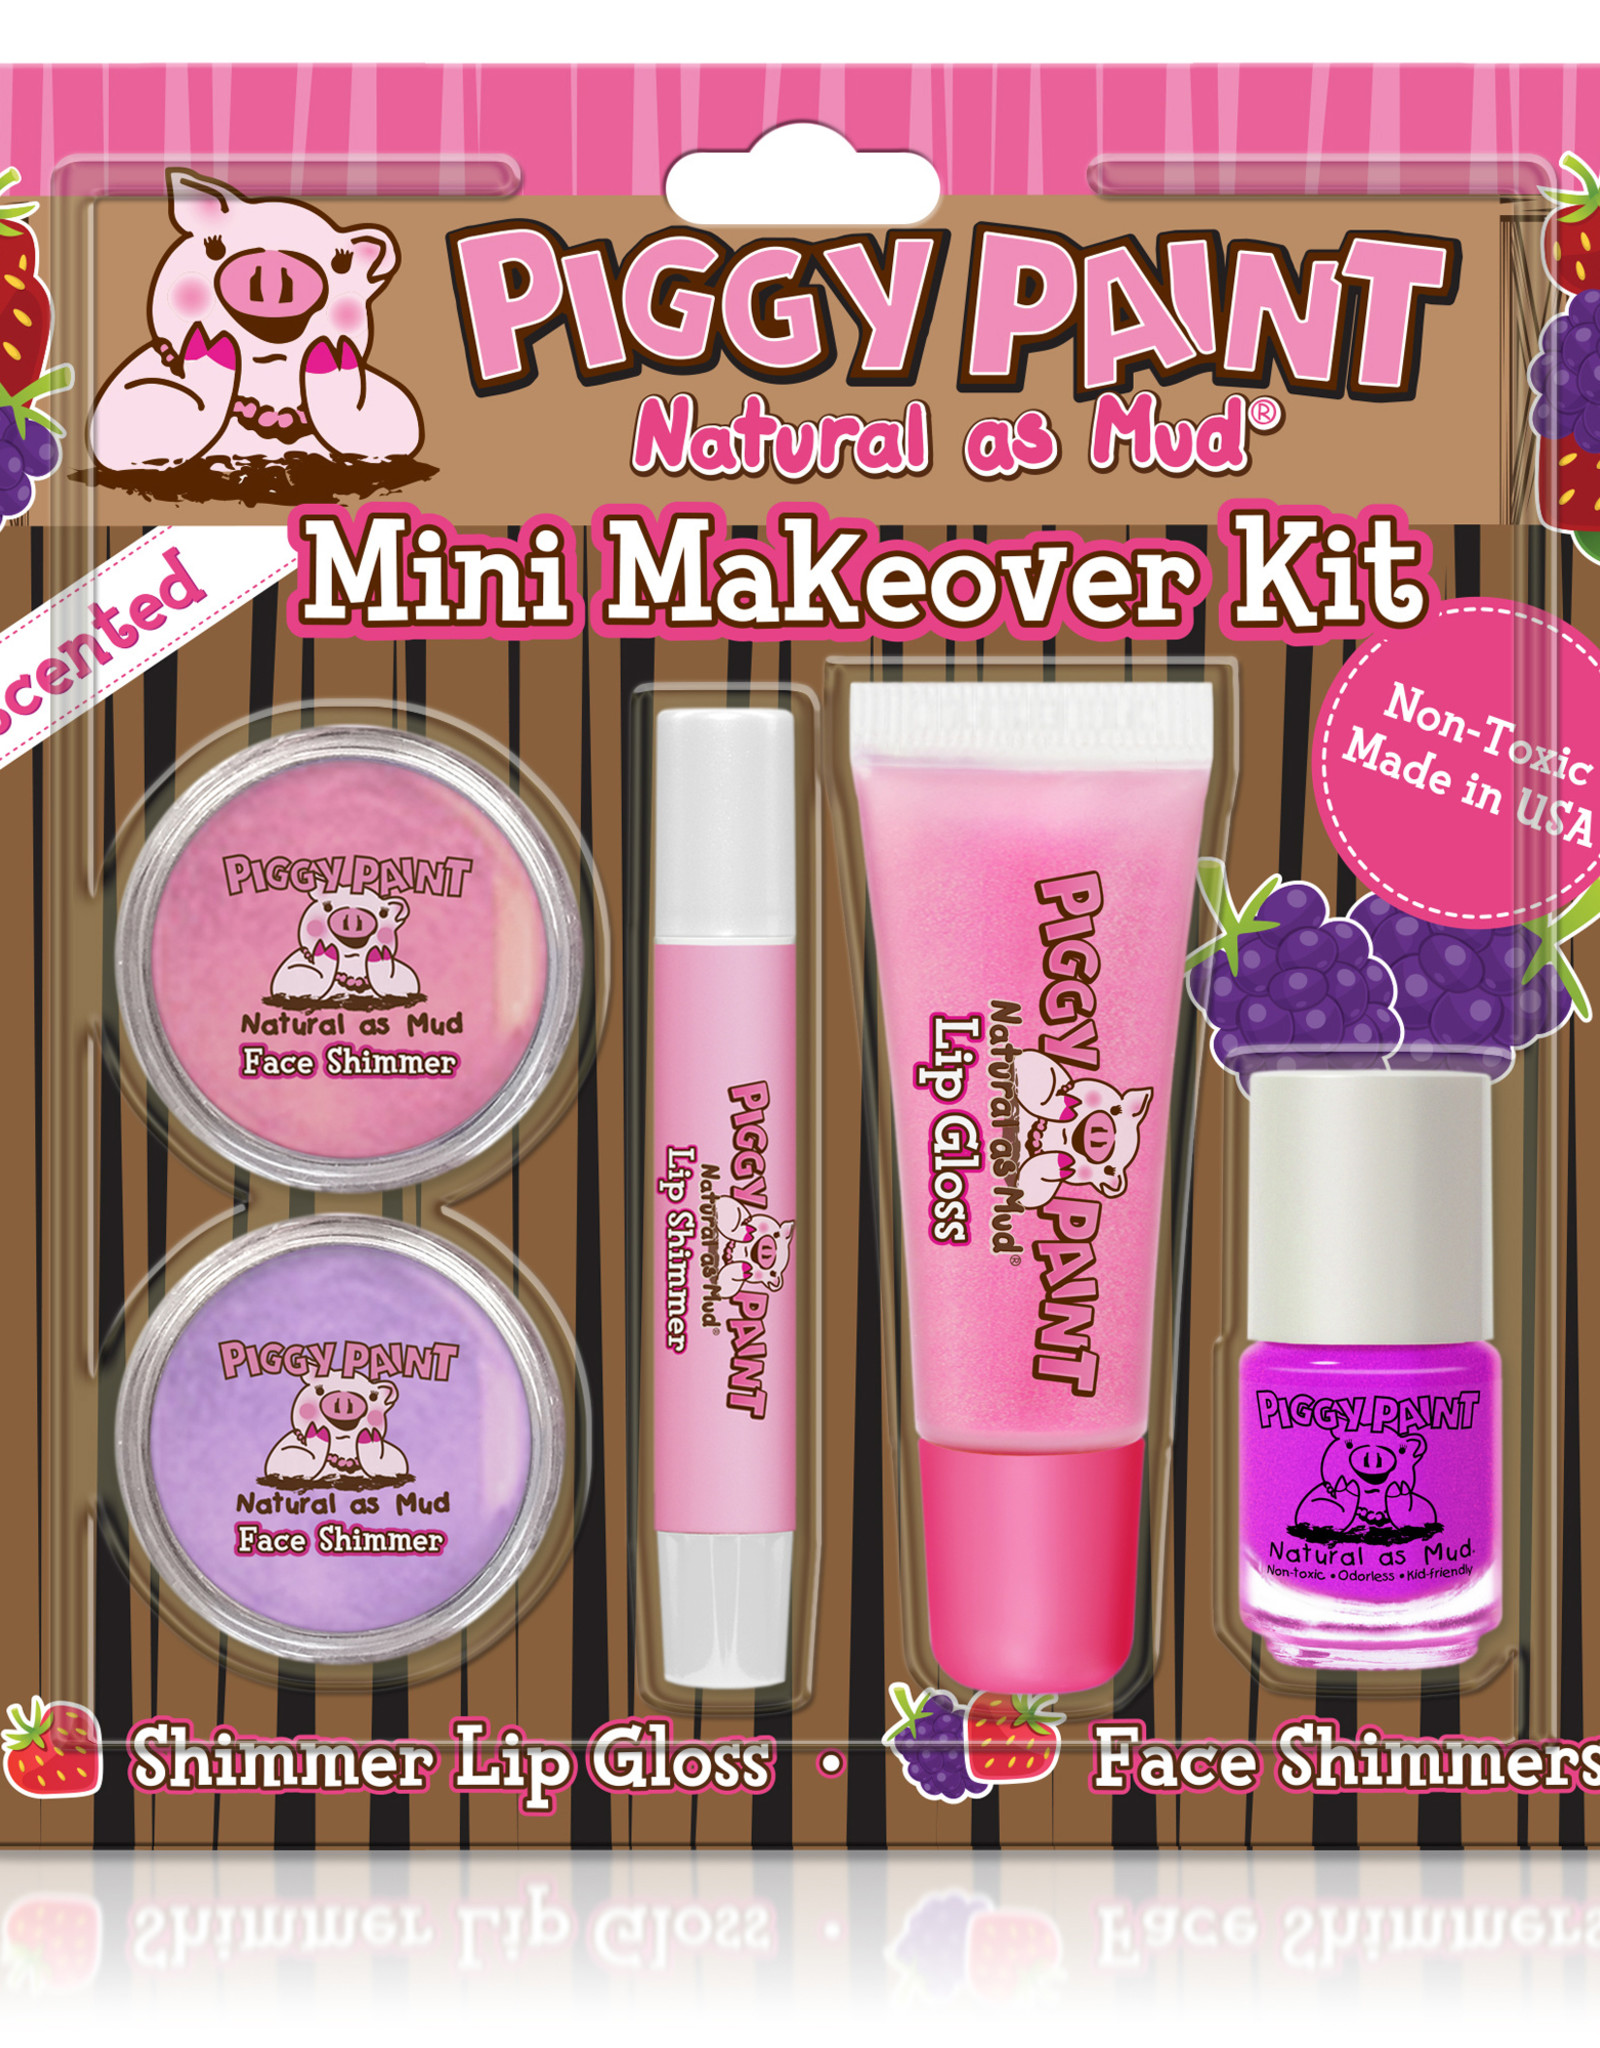 Piggy Paint Piggy Paint mini makeover kit - Grape